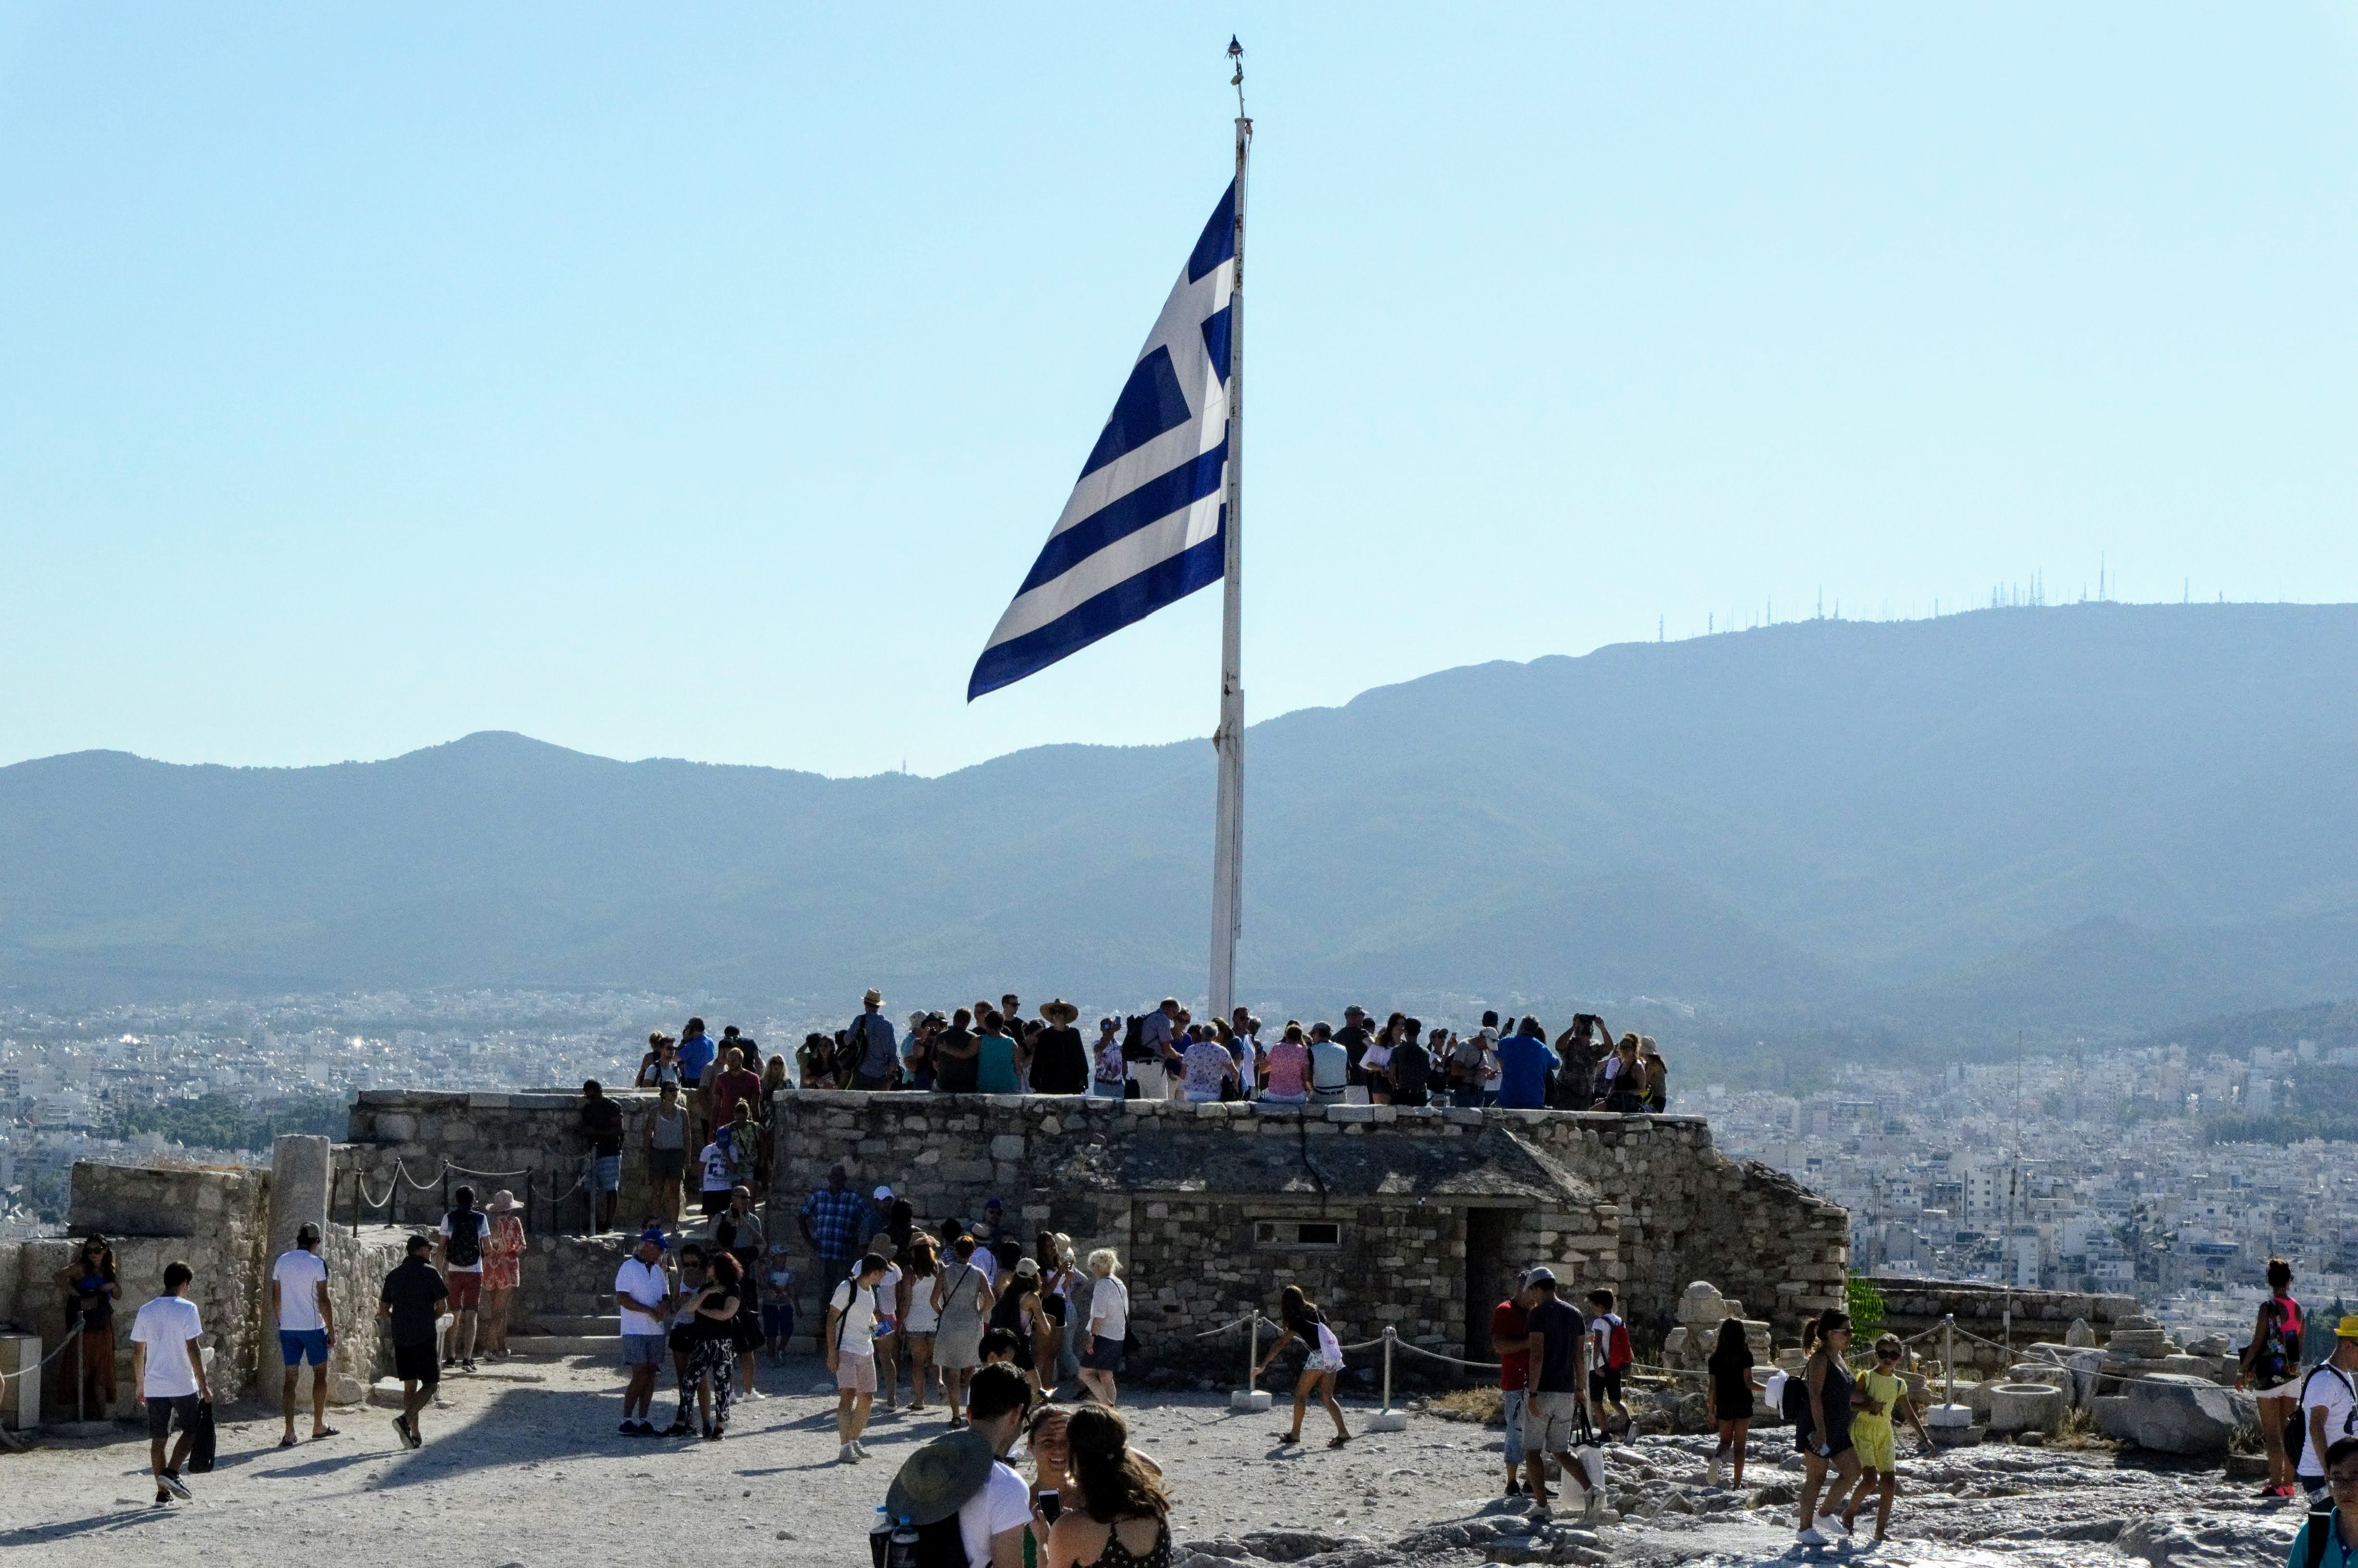 Flag on the top of Acropolis of AthensHekatompedon Temple - Acropolis of Athens - Athens, Greece, Europe - Honeymoon Part 1 - Athens is a beautiful capital city rich with history. With it's impressive Acropolis and quaint pedestrian streets, we headed here for our Honeymoon Part 1! Veritru Travel Blog